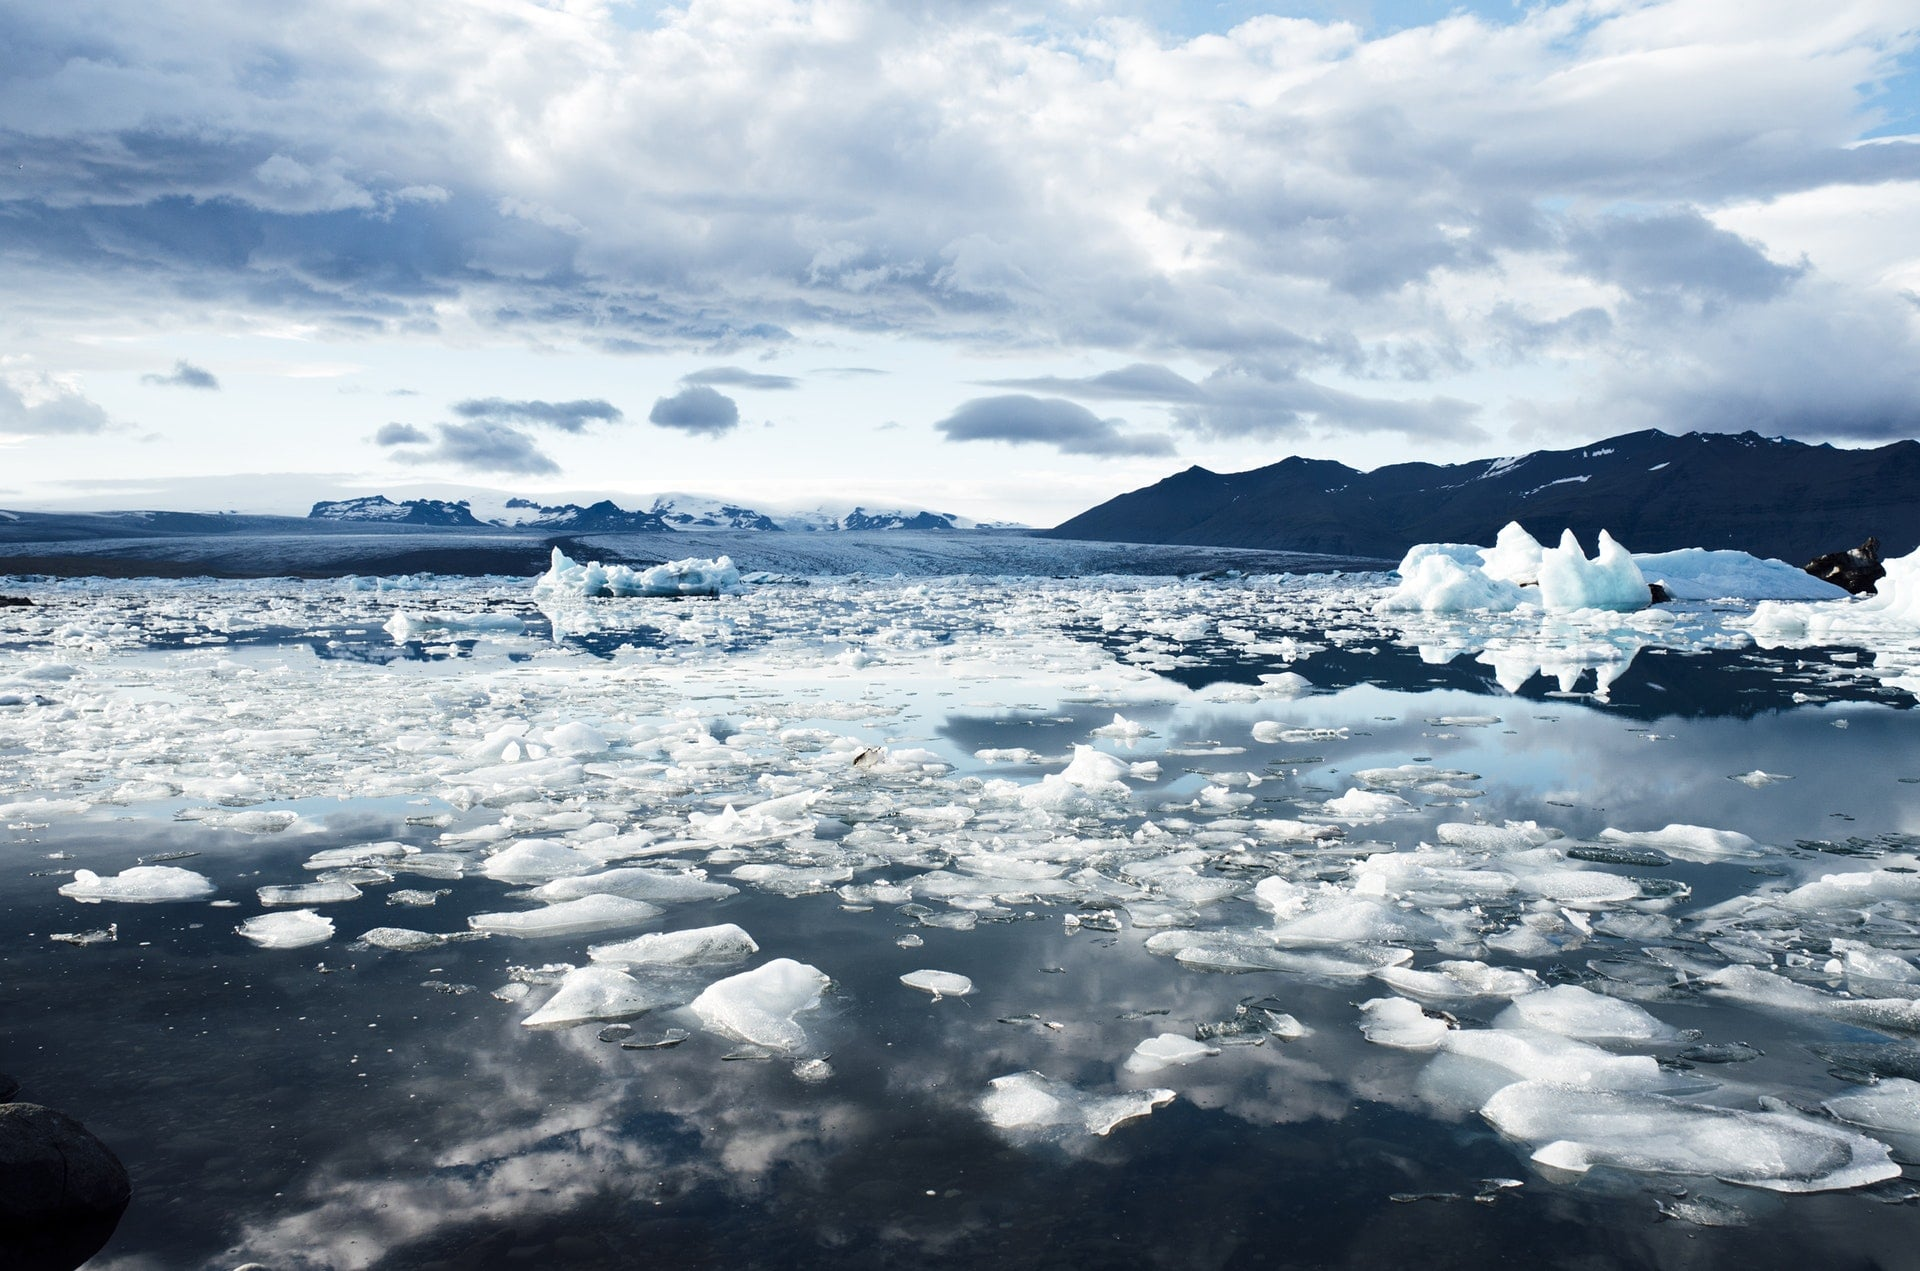 Opinion: Could CO2 Not Be The Cause of Global Warming?